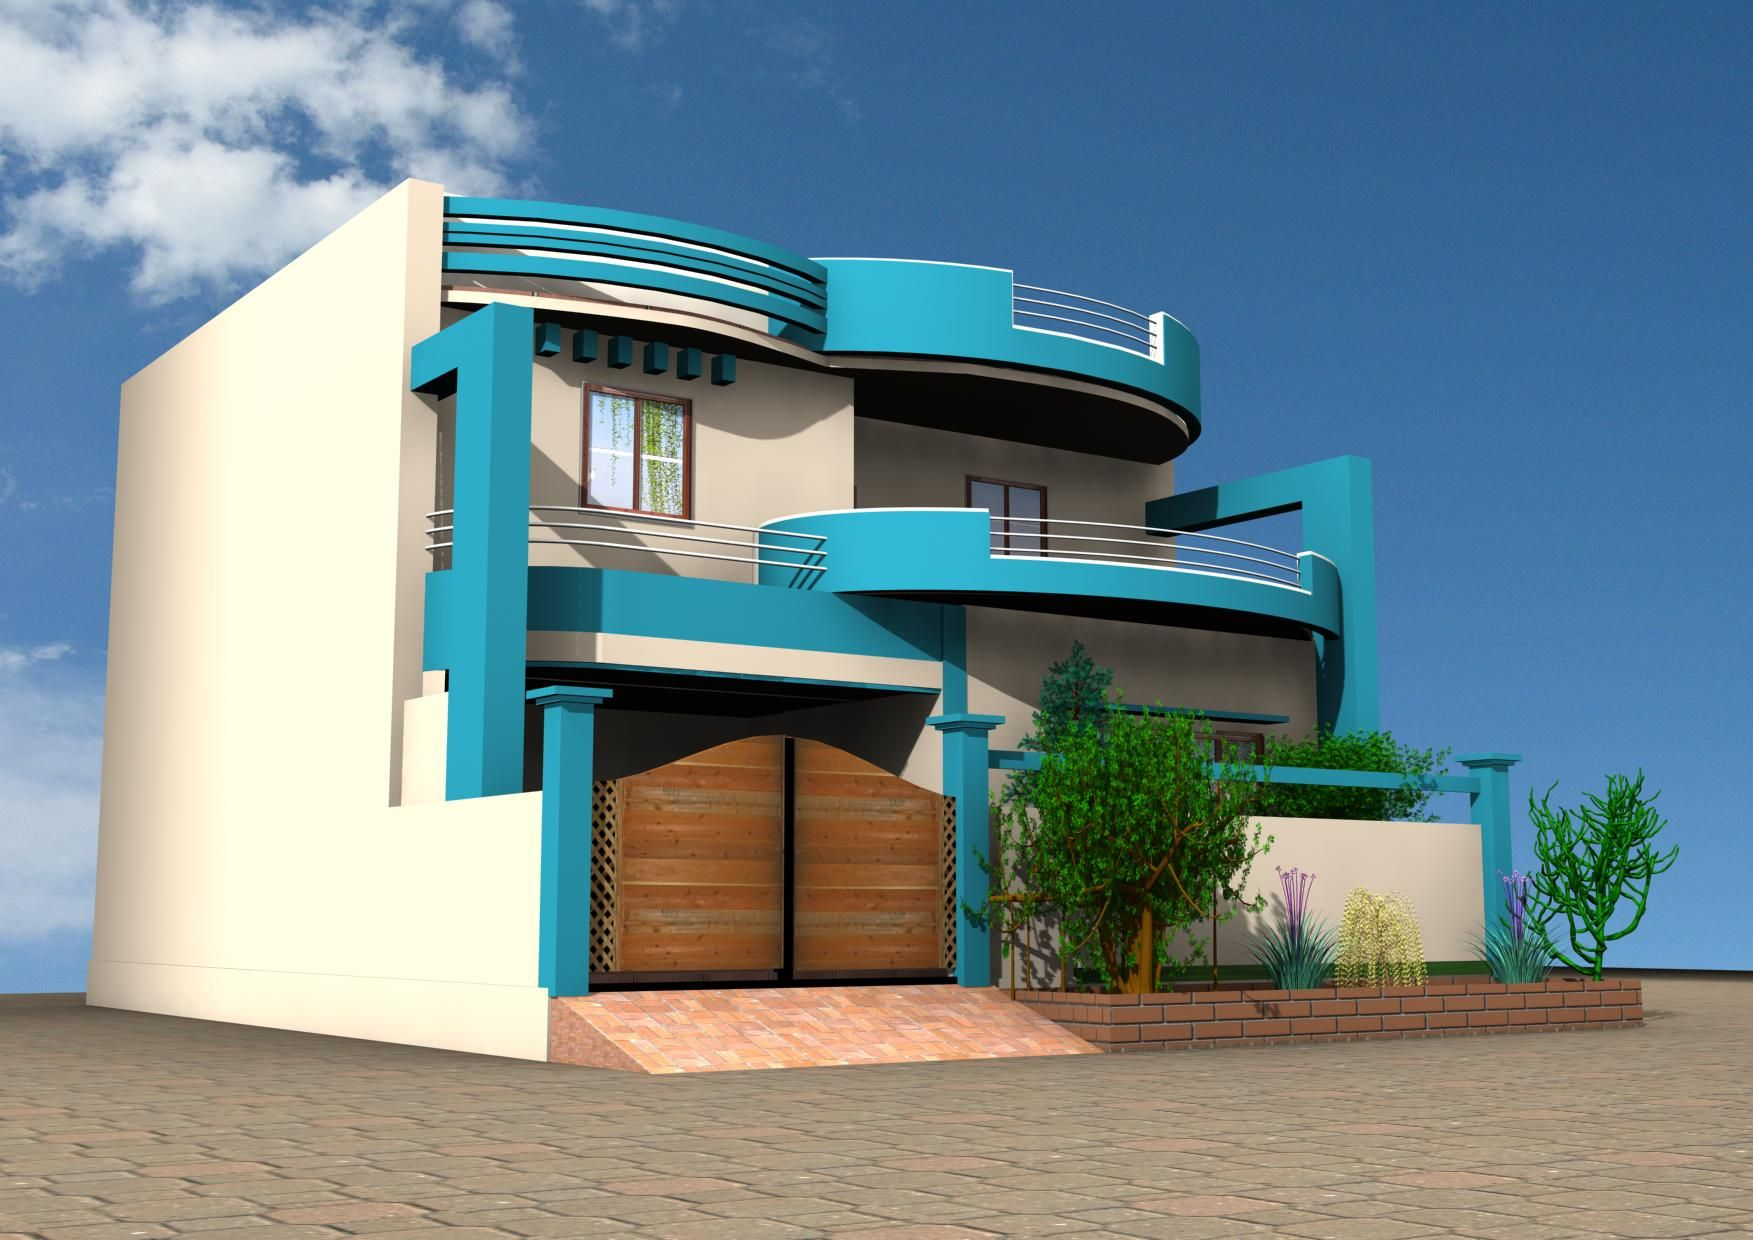 3d home design images hd 1080p for Exterior 3d design